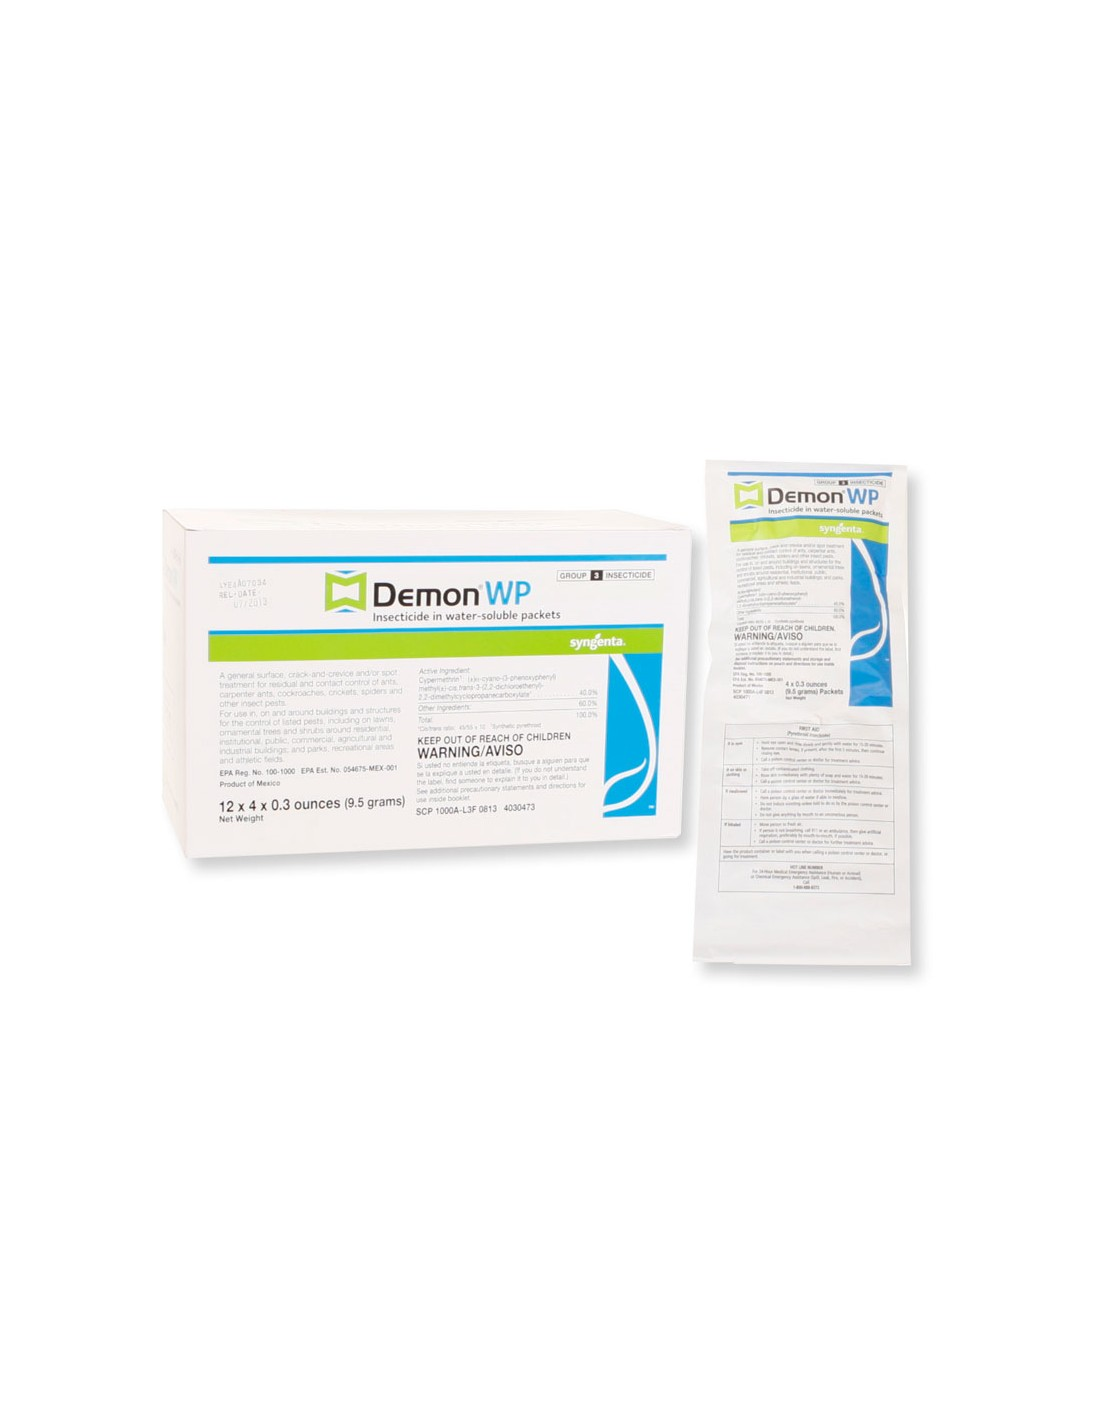 is there a store in Merrimack, NH that sells Demon WP